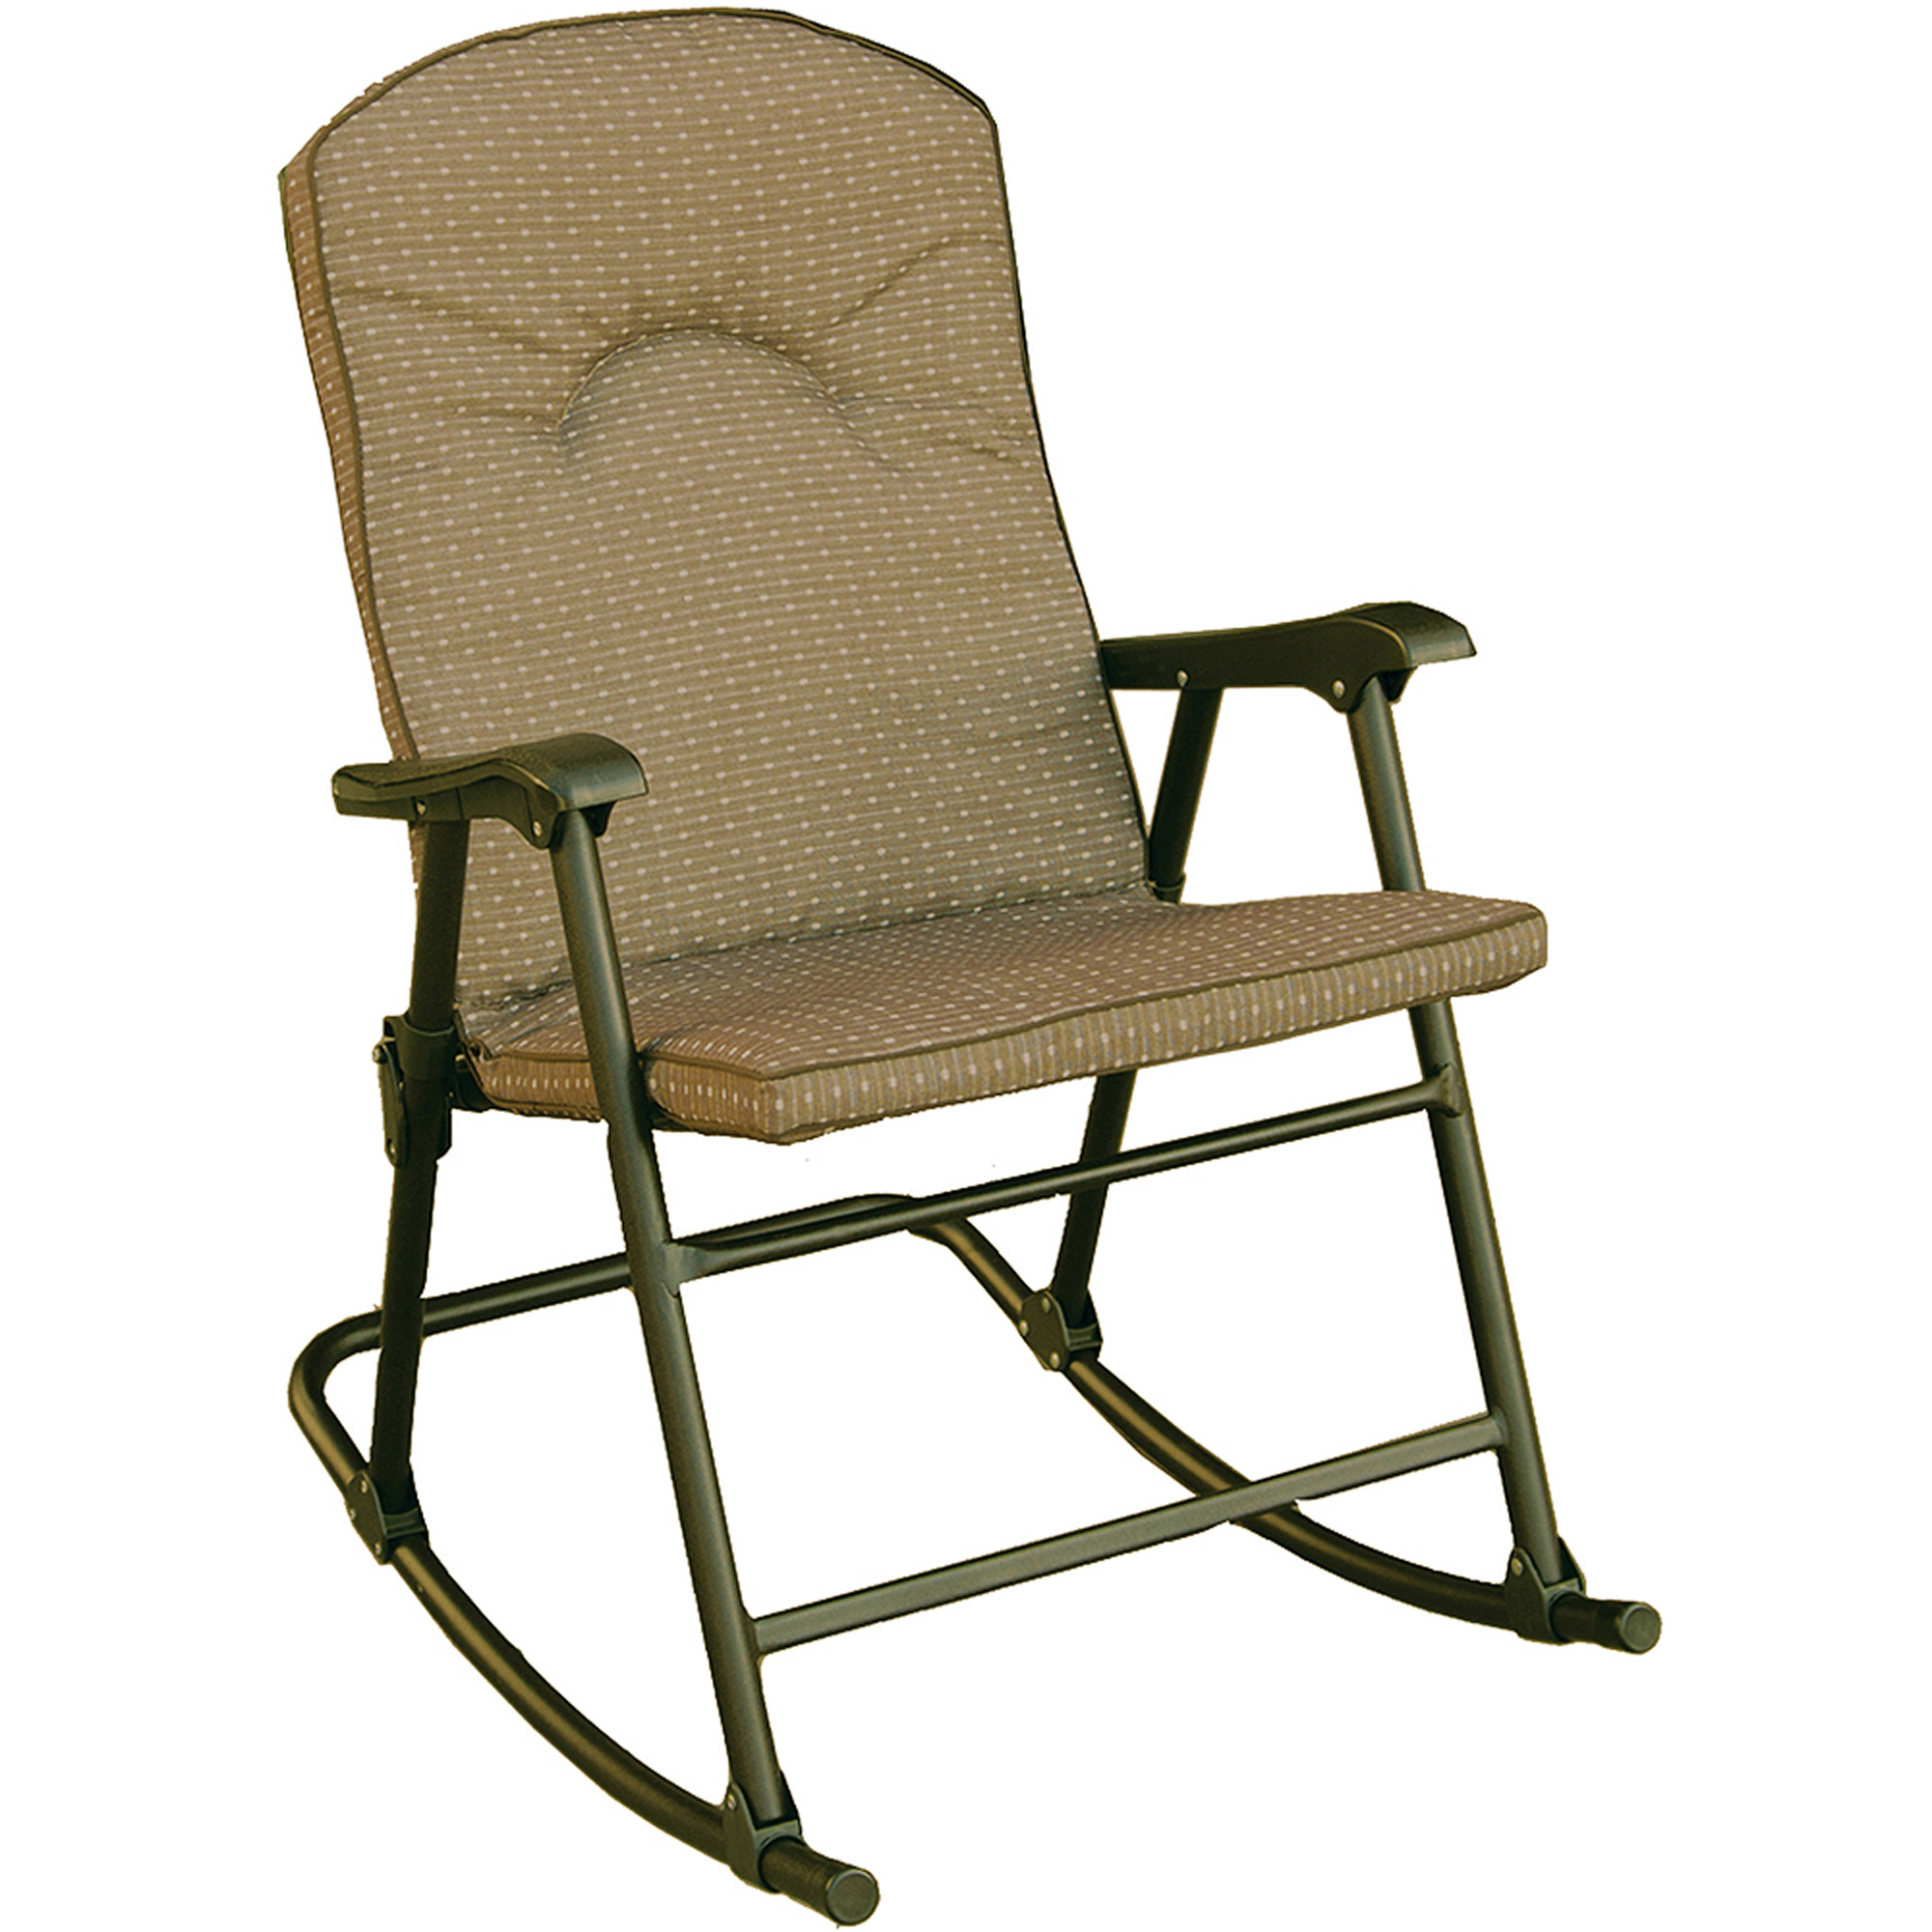 Padded Folding Lawn Chairs Beautiful Enchanted Padded Folding